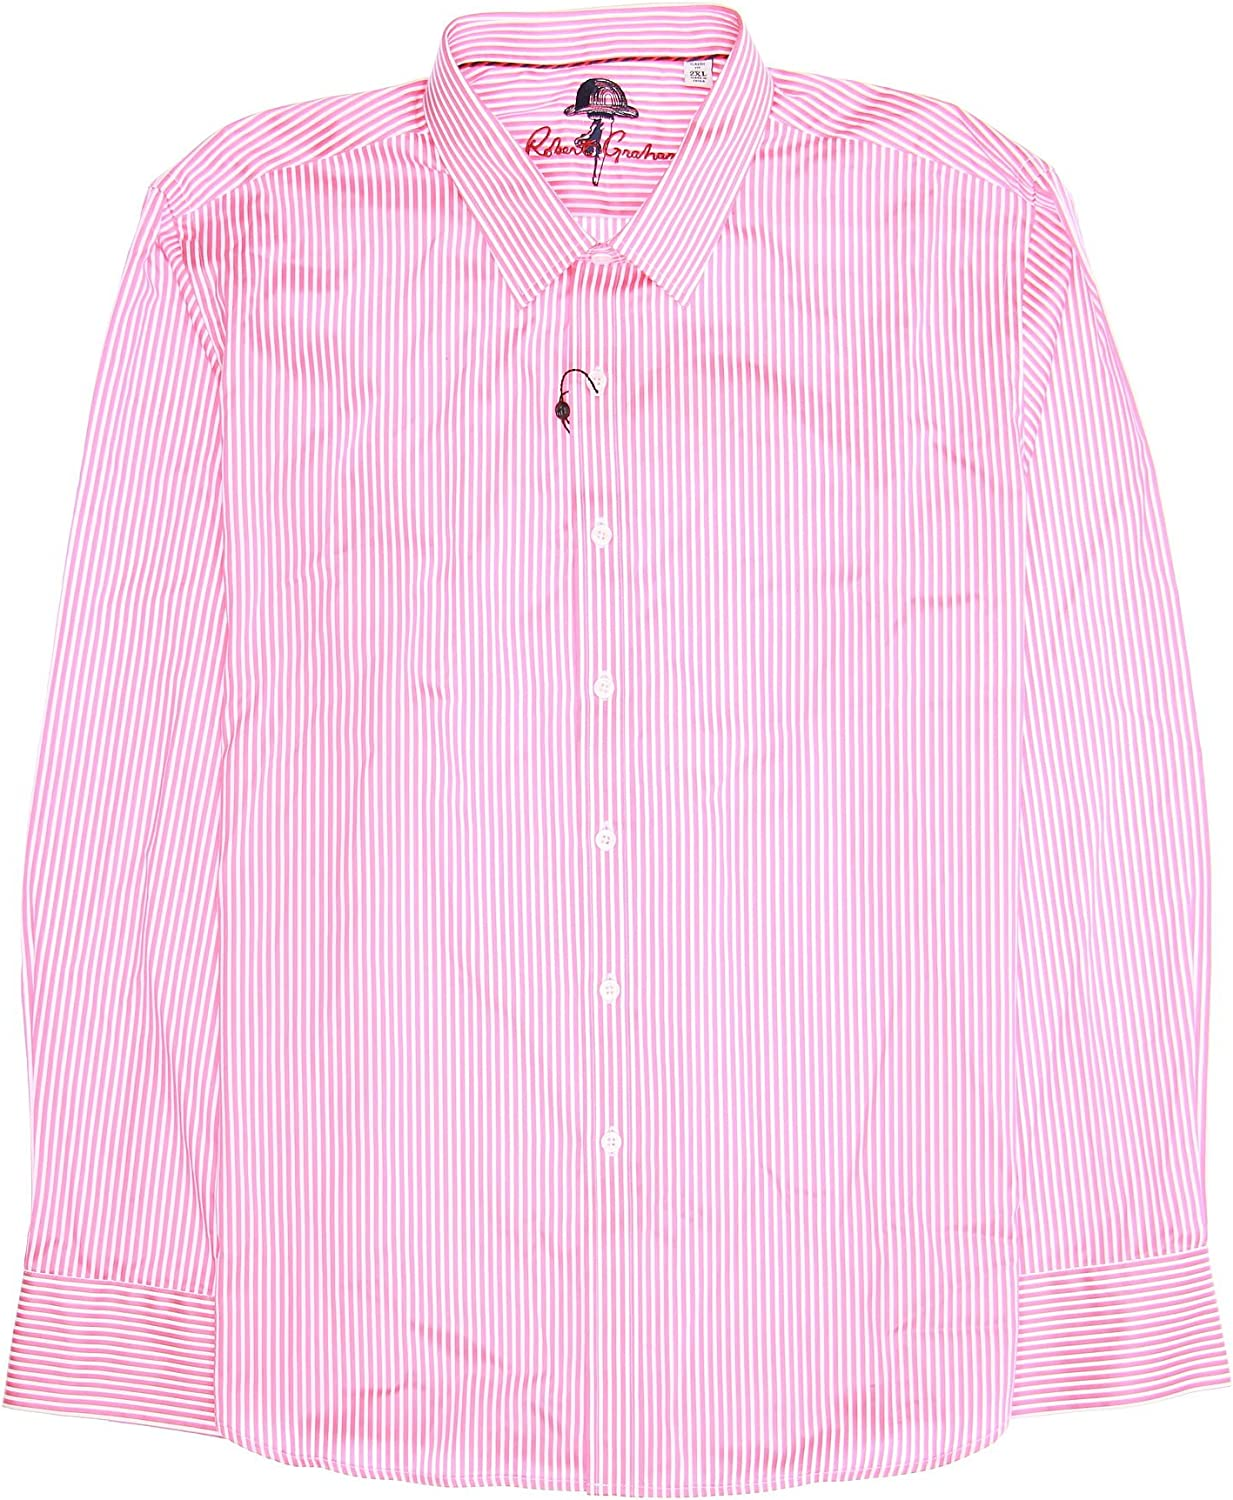 Robert Graham 'Crosswall' Mens Mauve Striped Button Be super welcome Down Shirt Free shipping anywhere in the nation